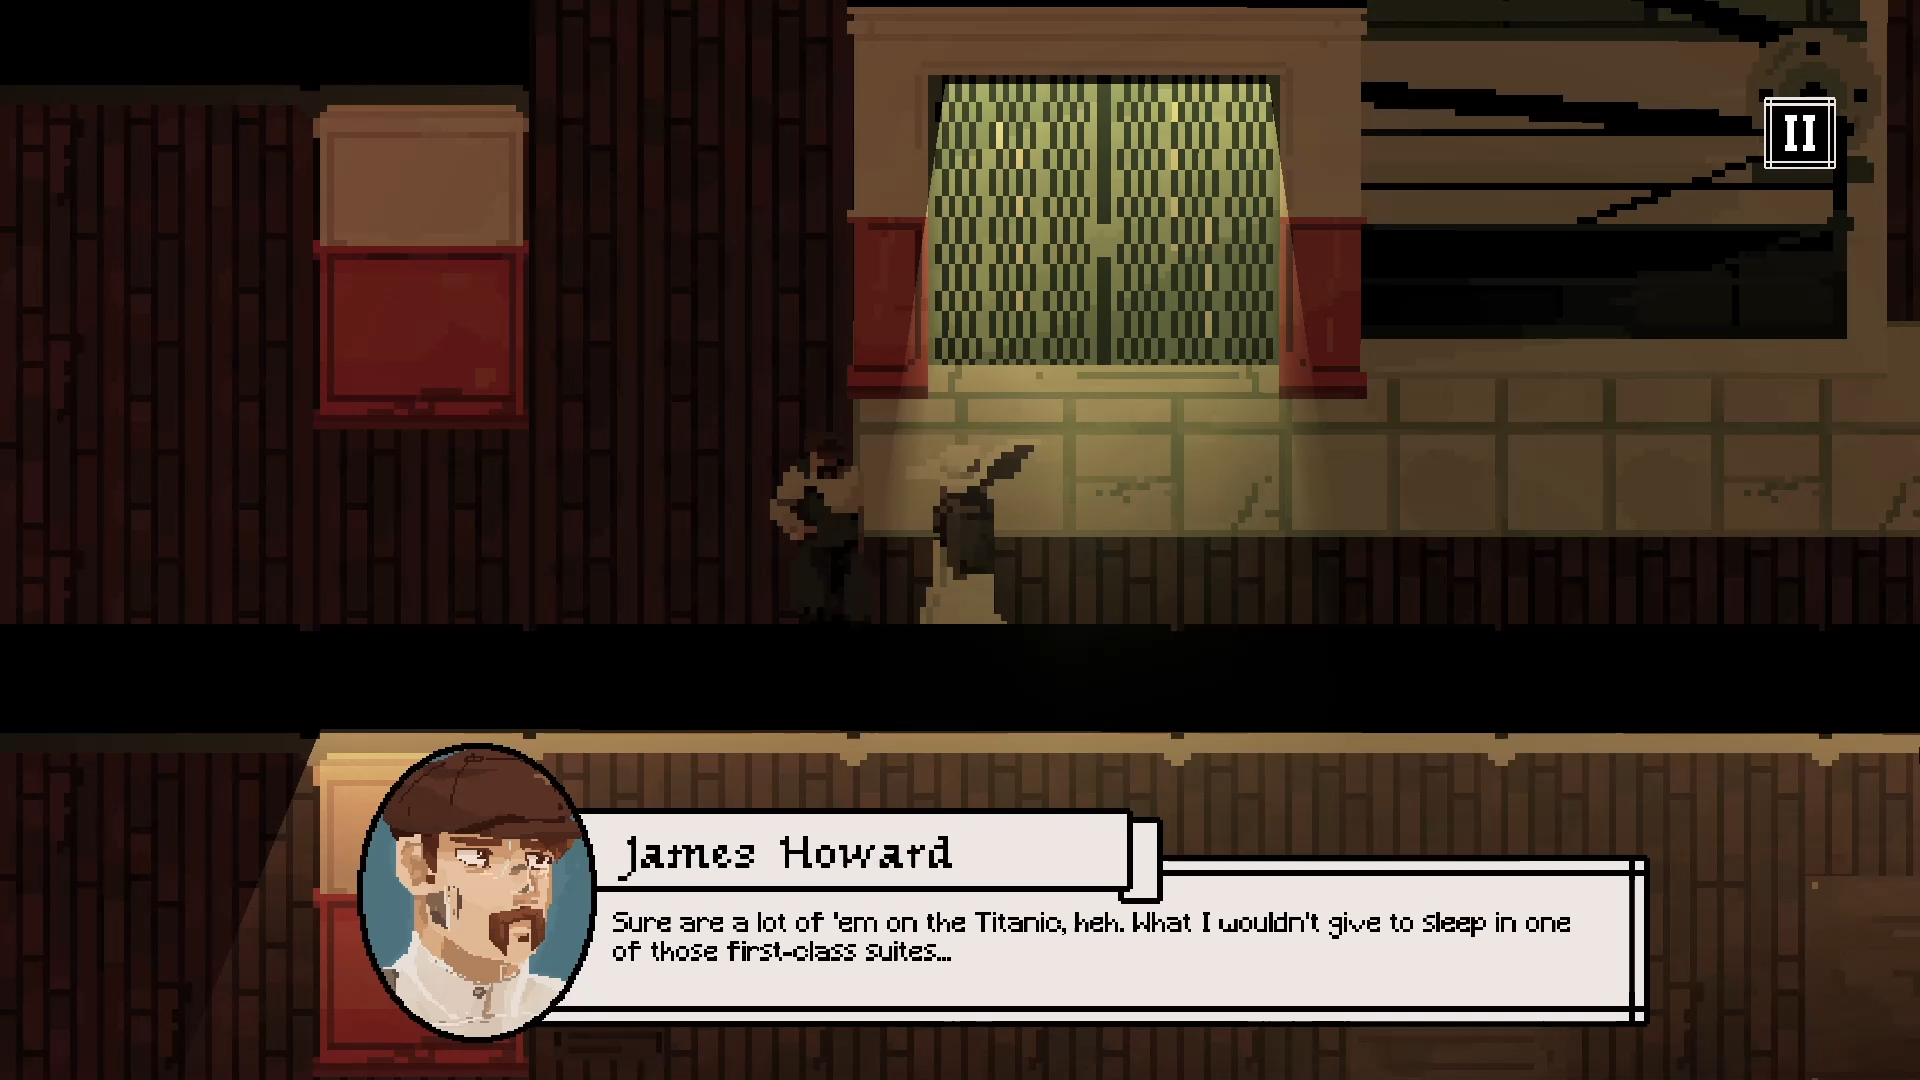 Beyond the Bow is a puzzle adventure game set aboard the Titanic.